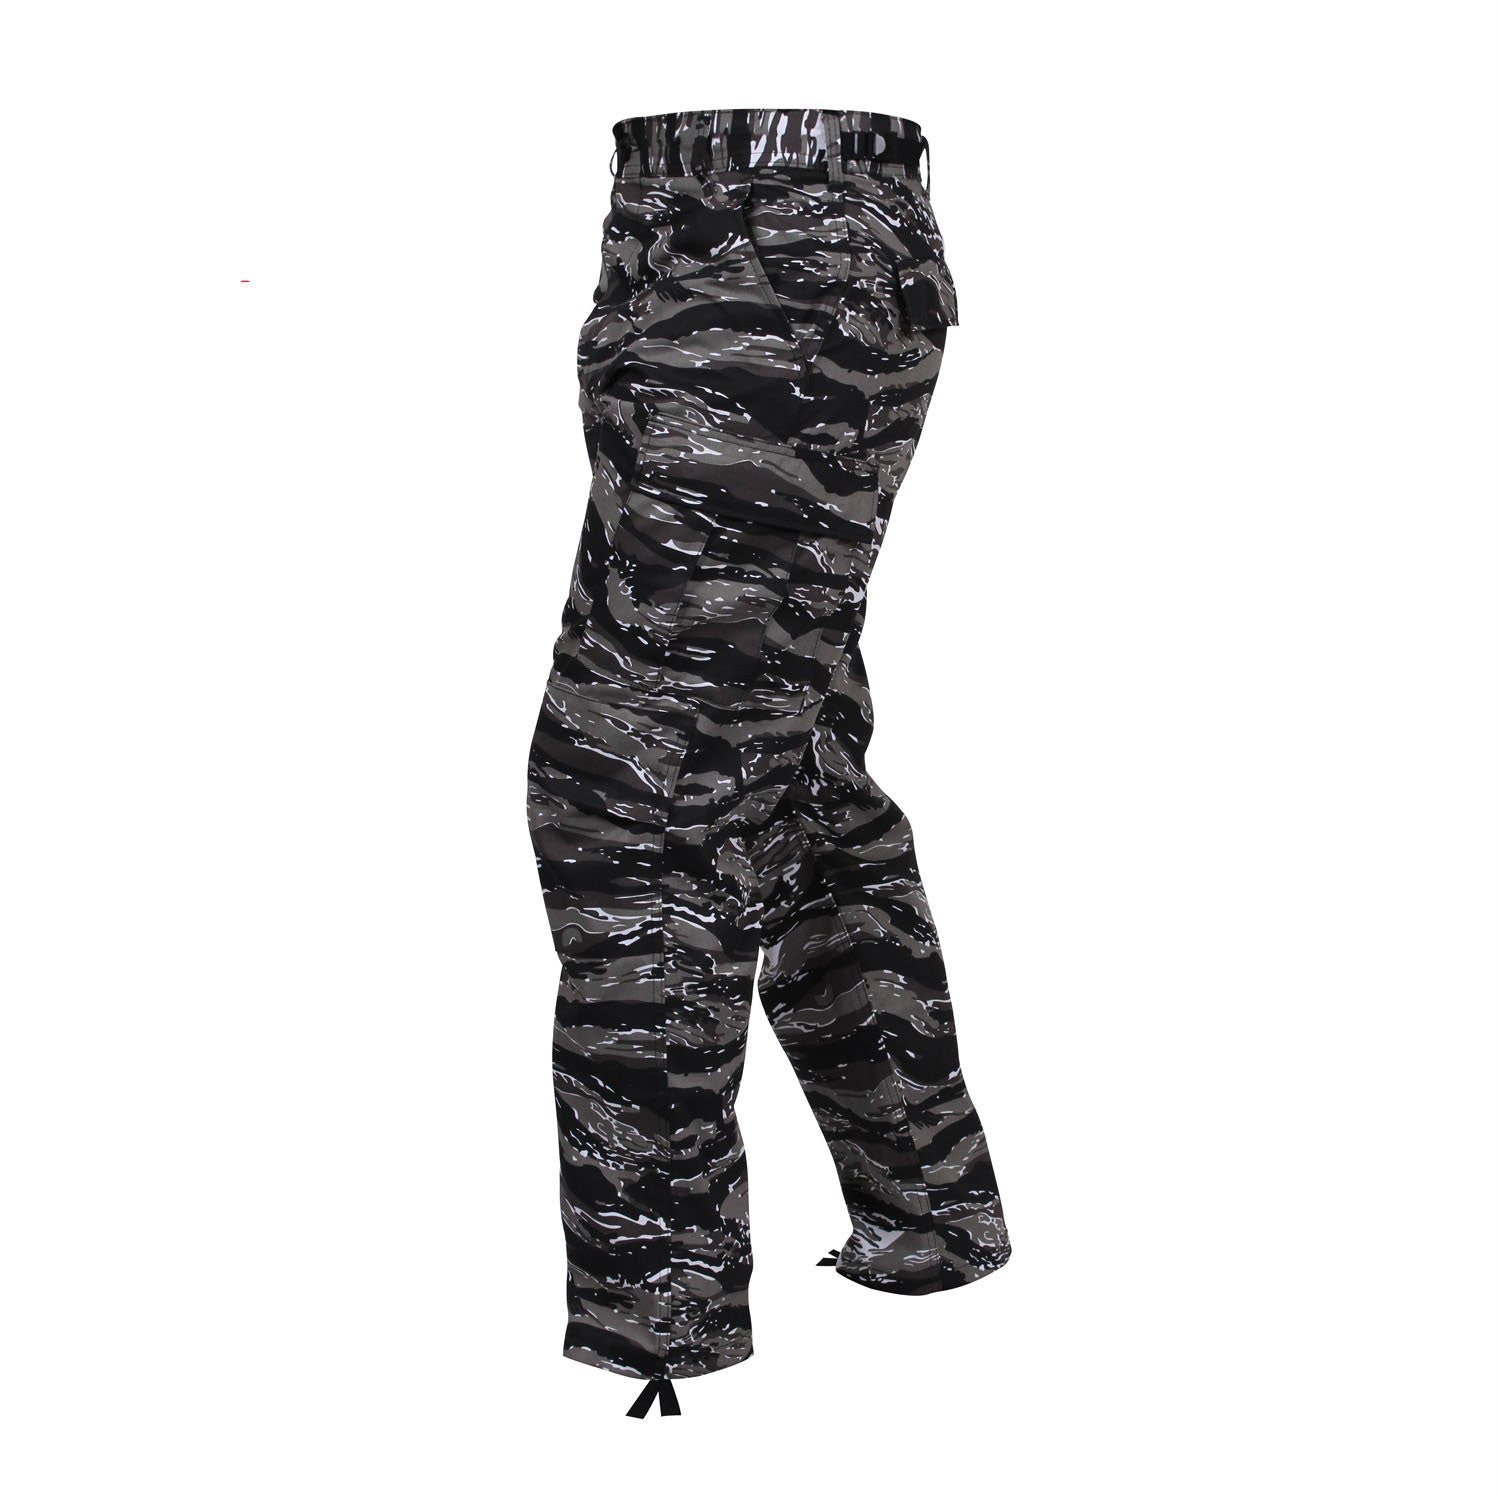 Urban Tiger Stripe Camouflage BDU Pants